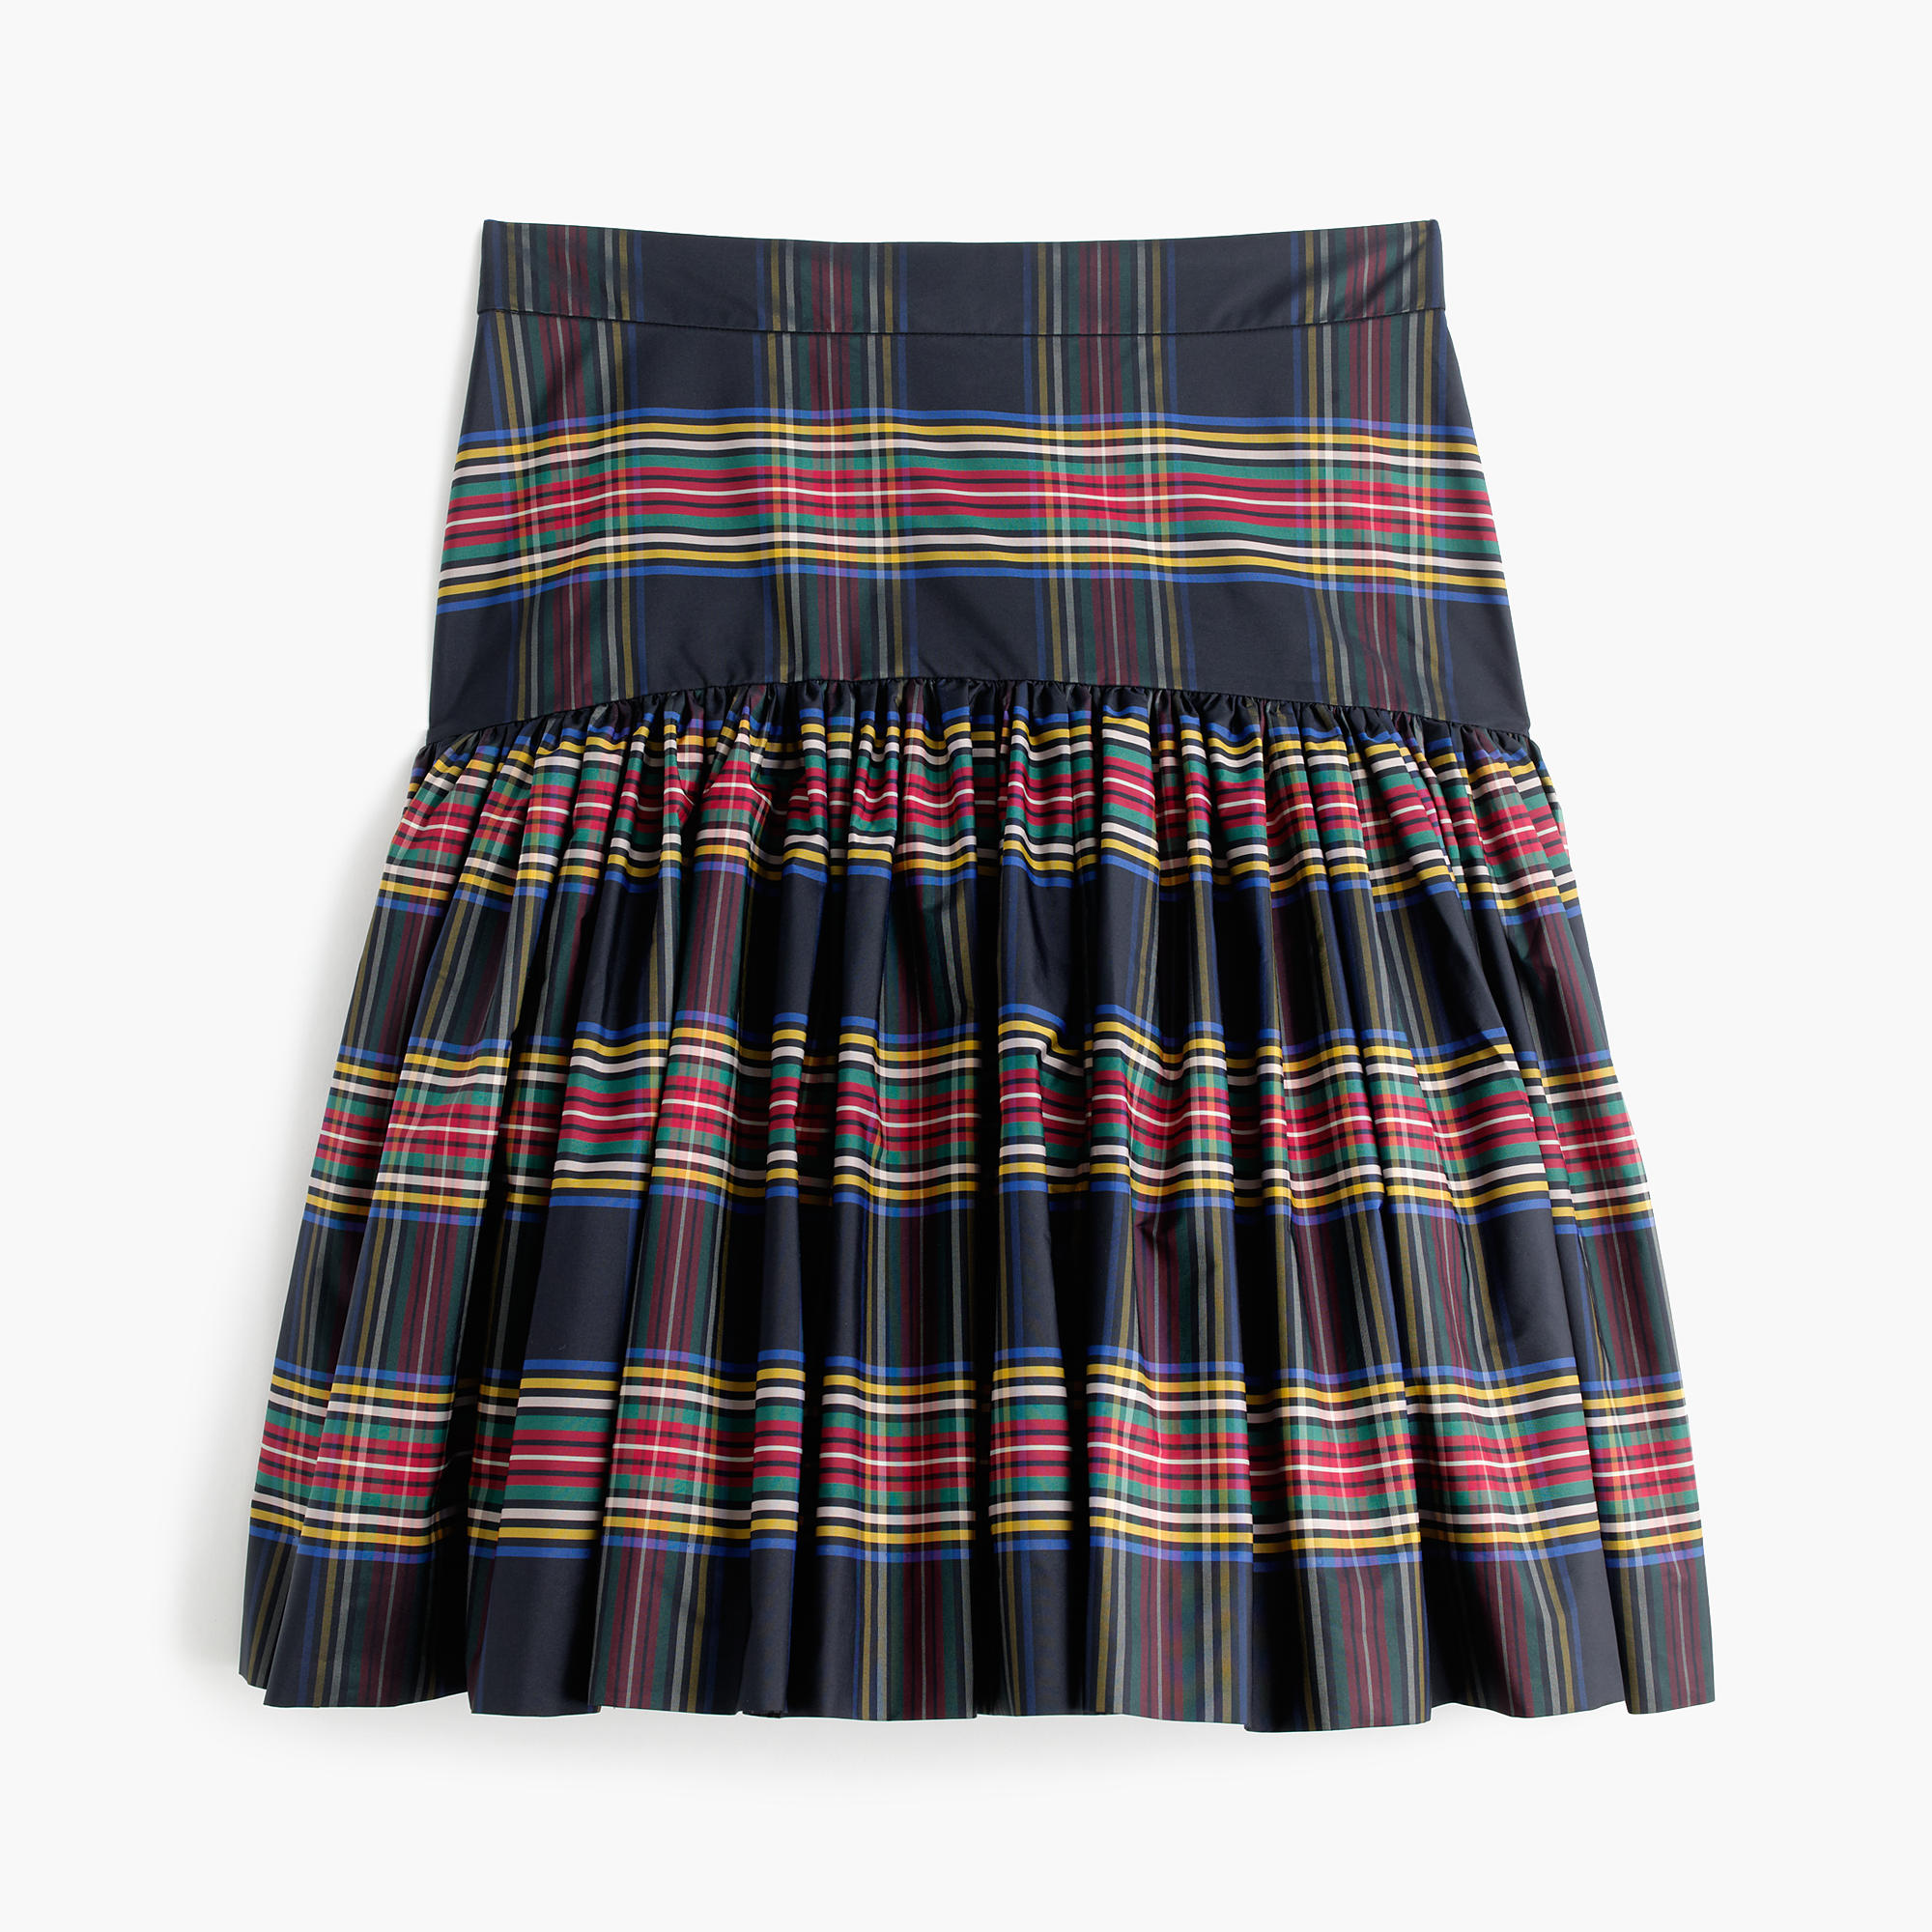 Taffeta Skirt In Stewart Plaid : Women's Skirts | J.Crew